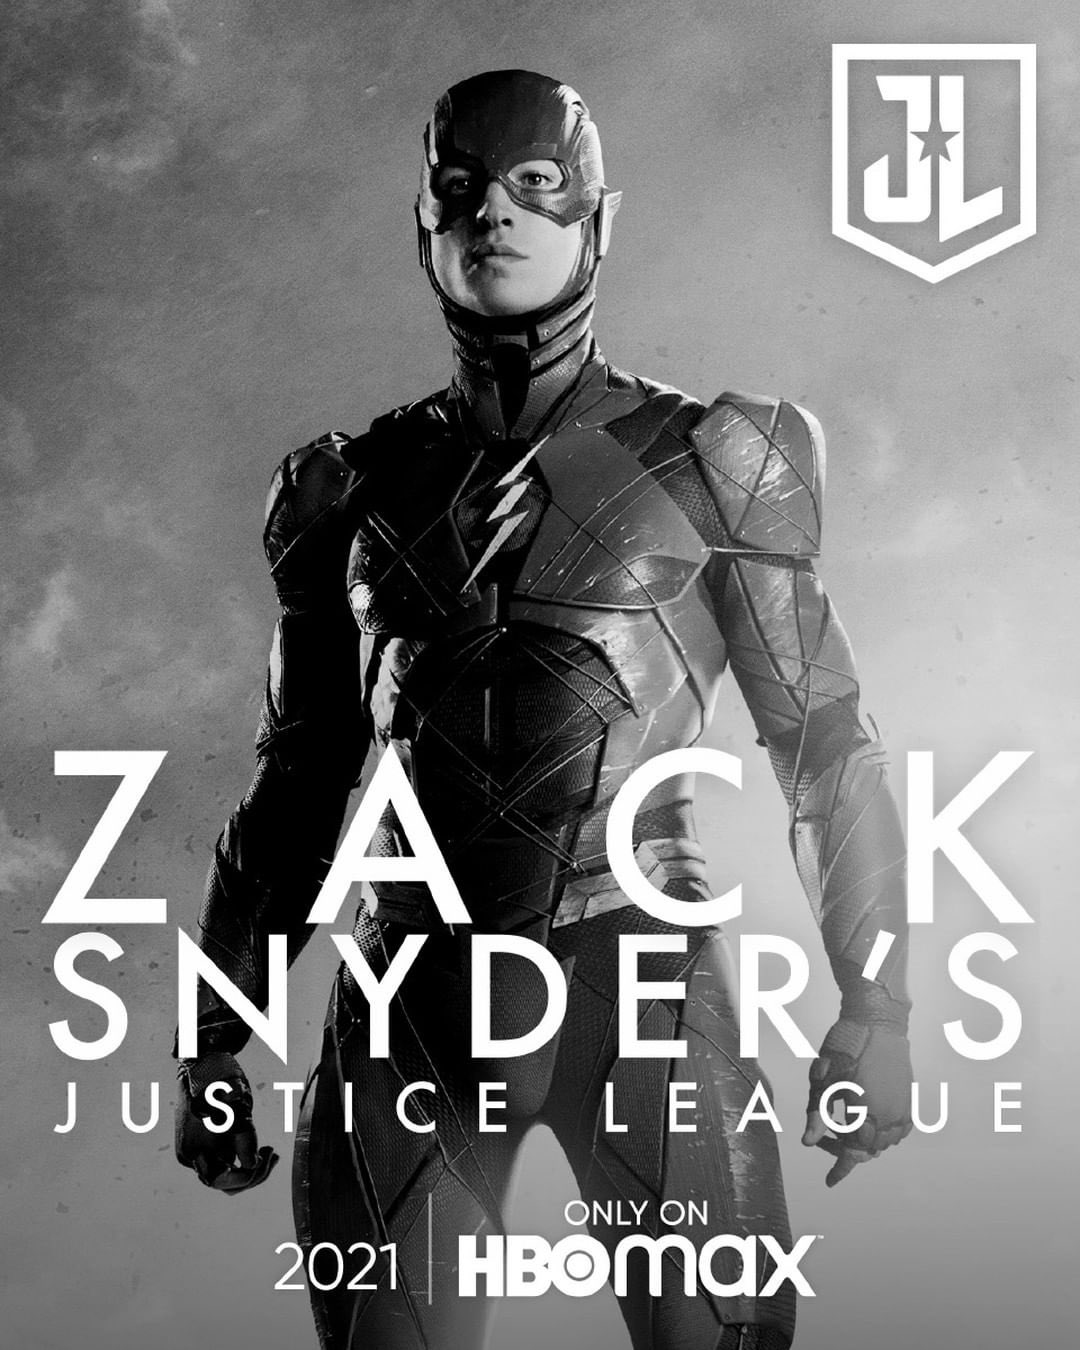 Zack Snyder's Justice League Poster - Ezra Miller as The Flash